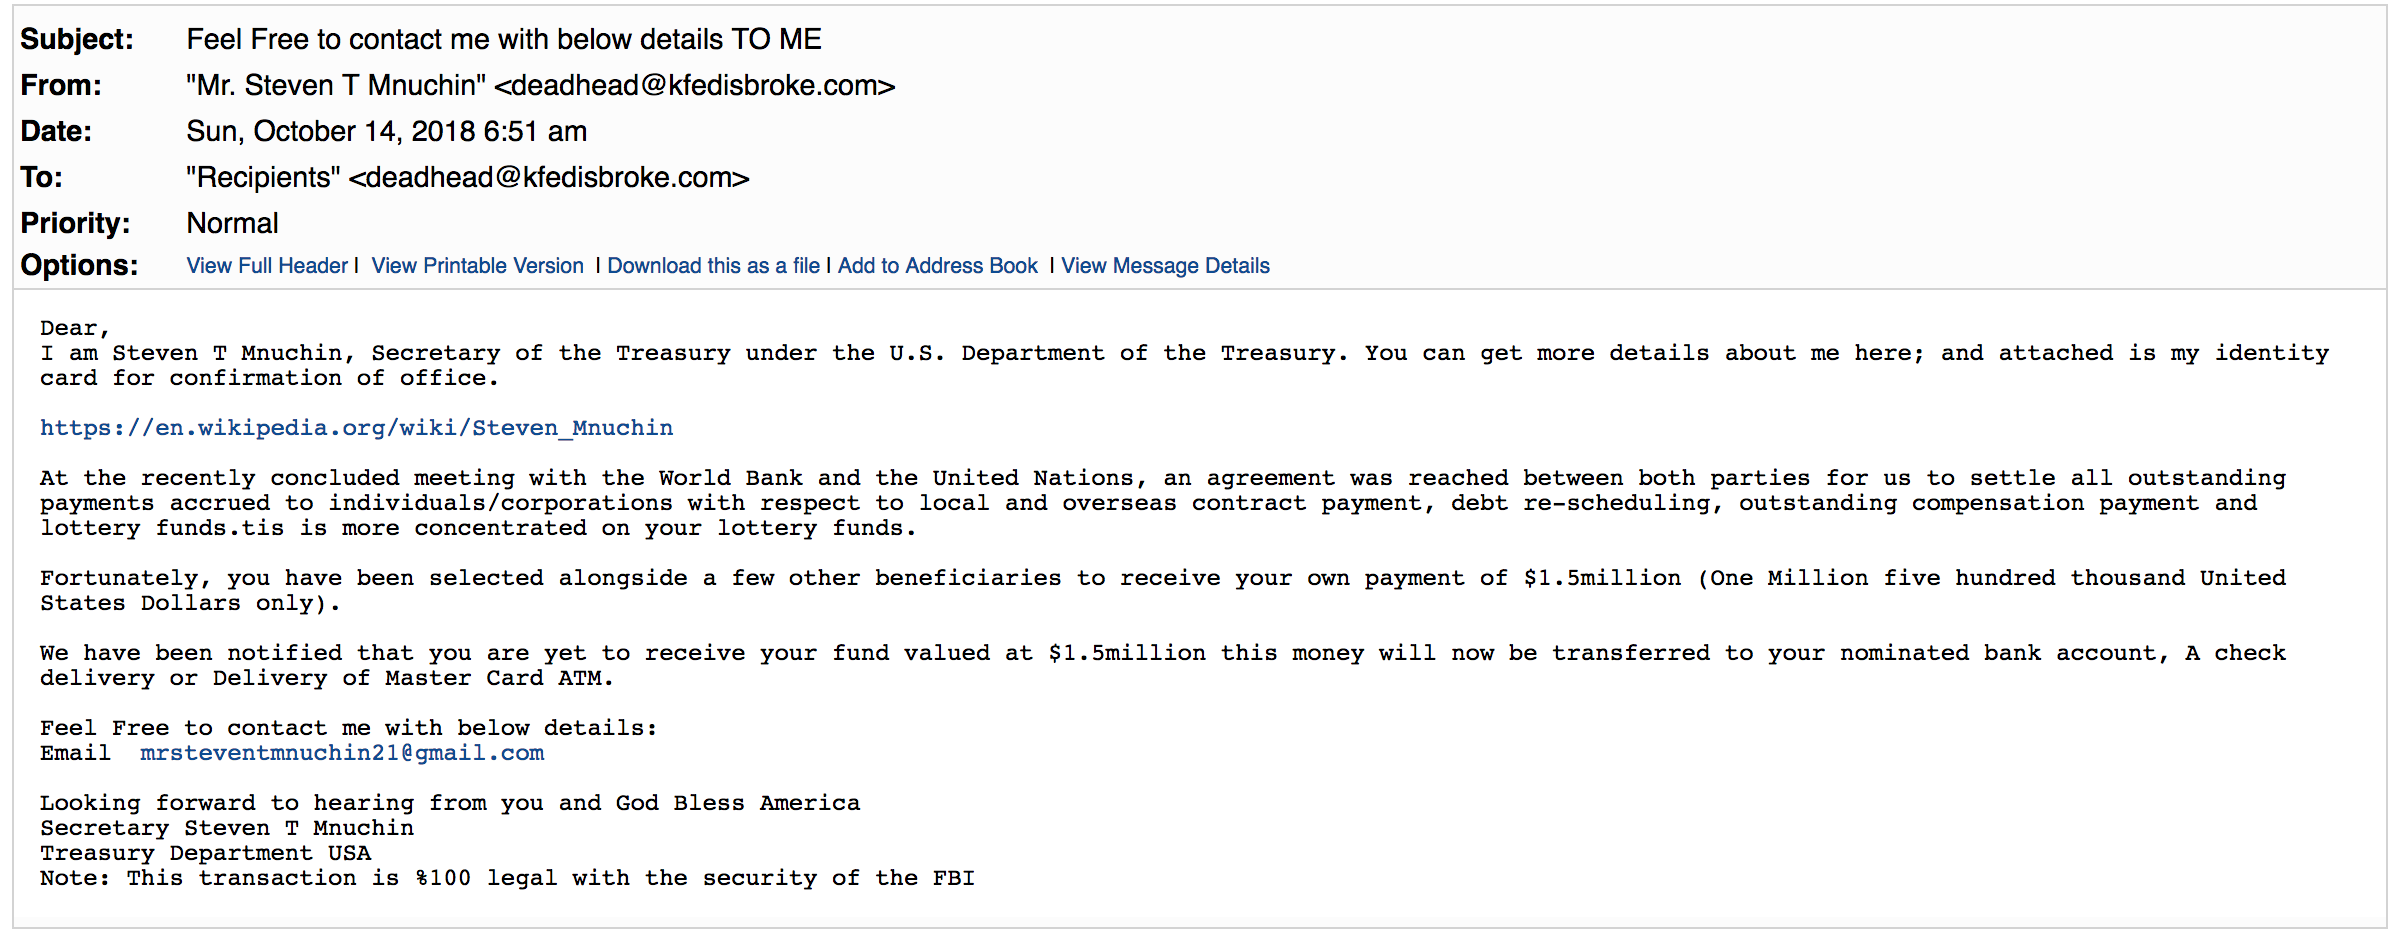 Funniest 419 Scam Email Ever.png